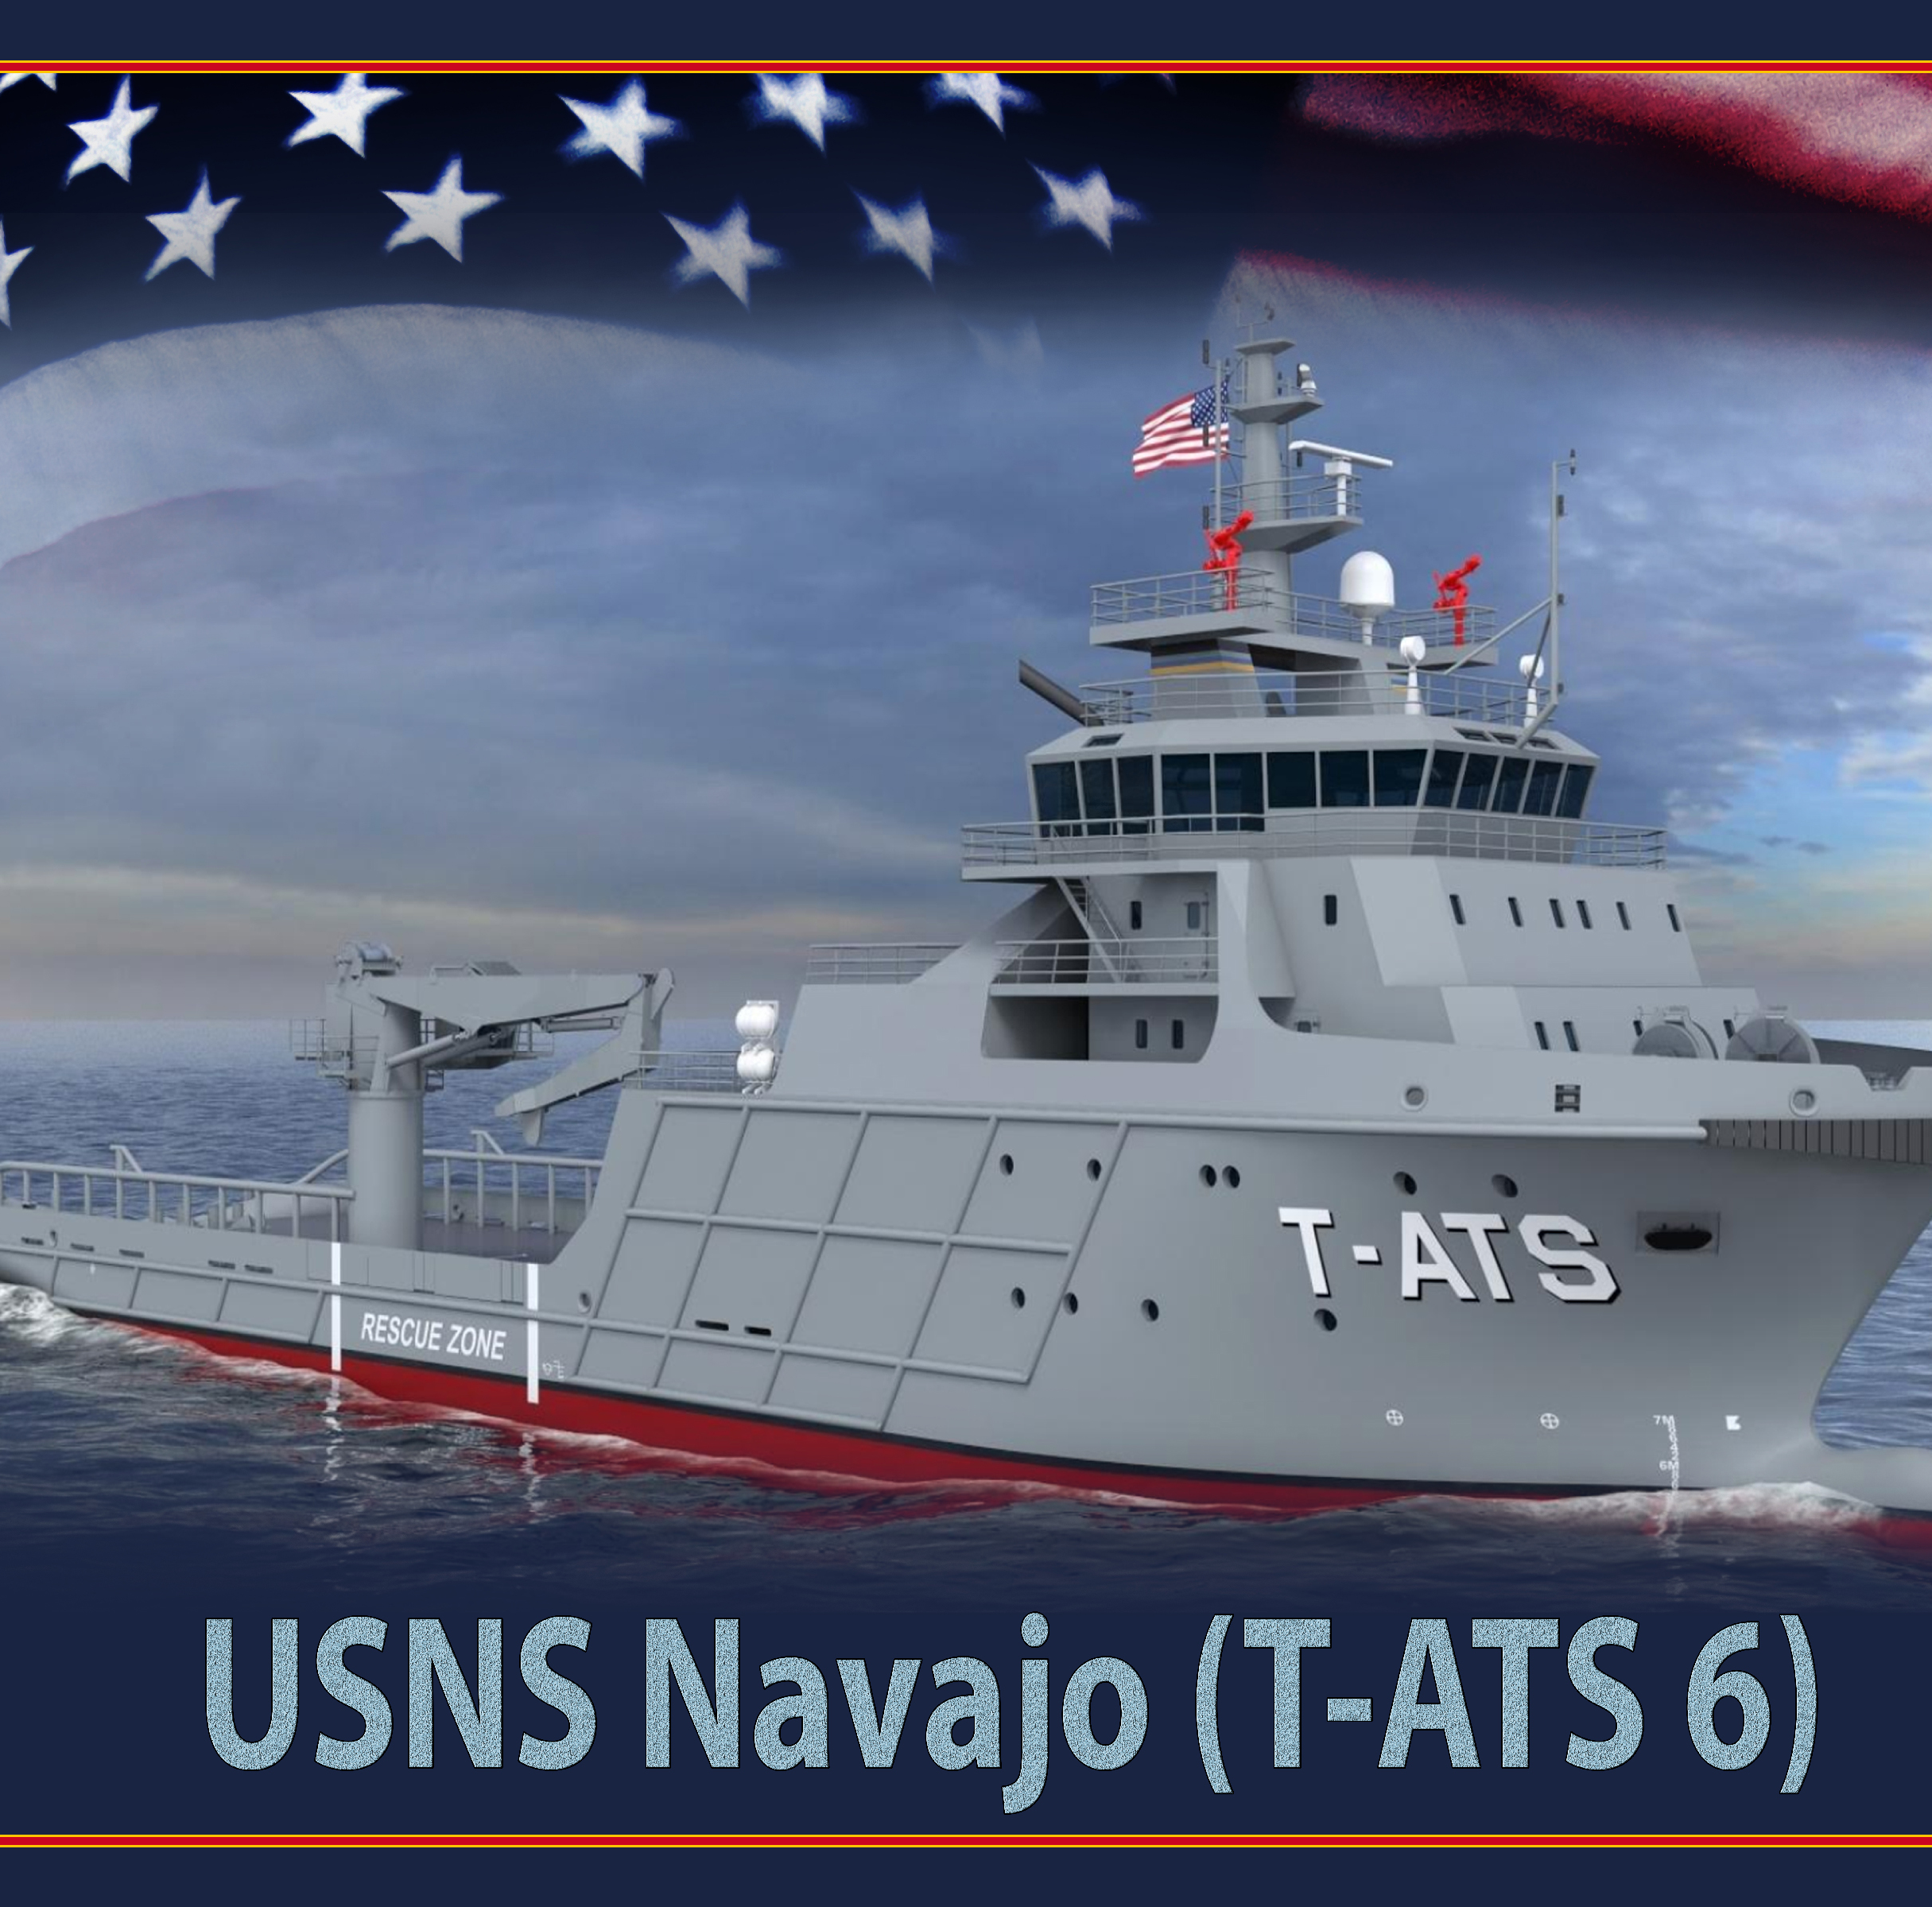 Navy names new ship class after Navajo tribe